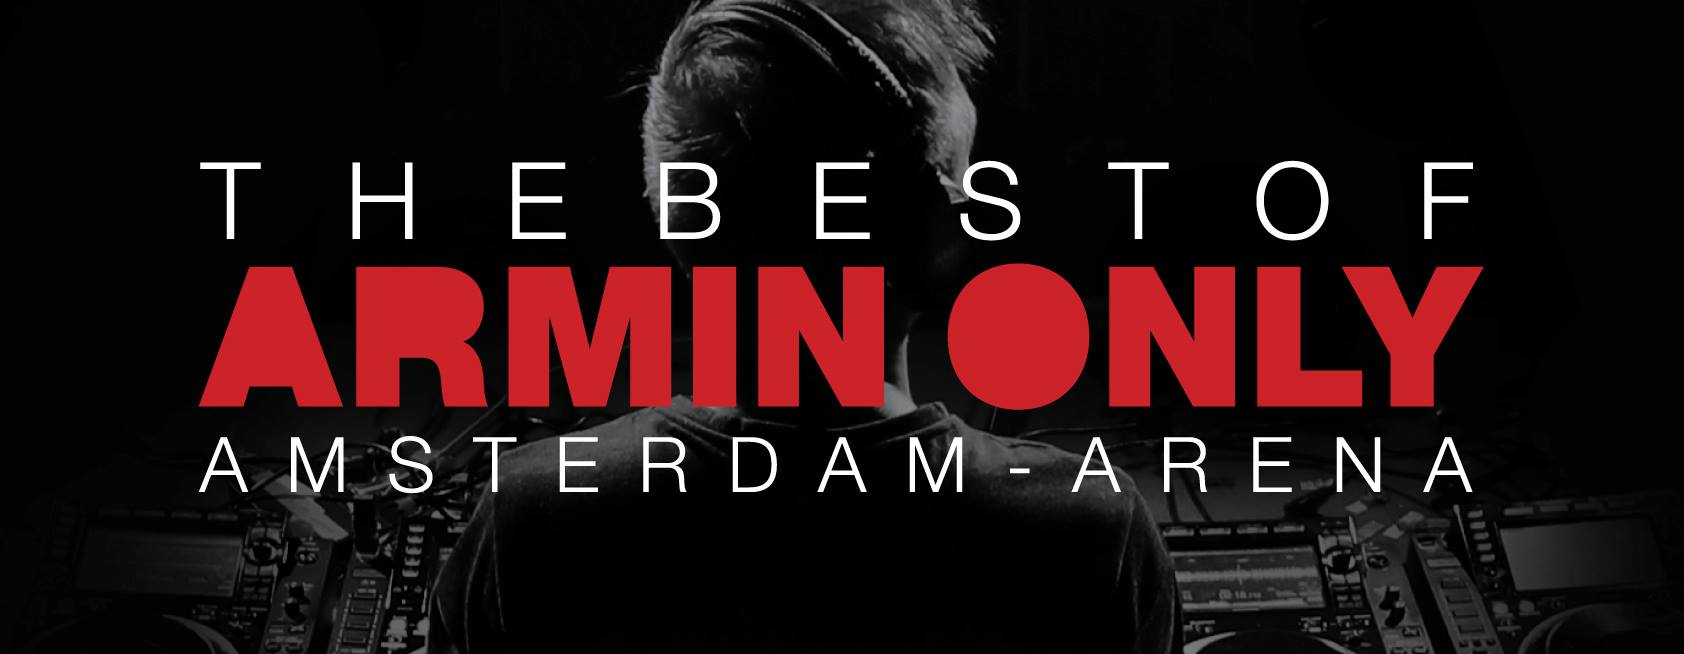 best-of-armin-only